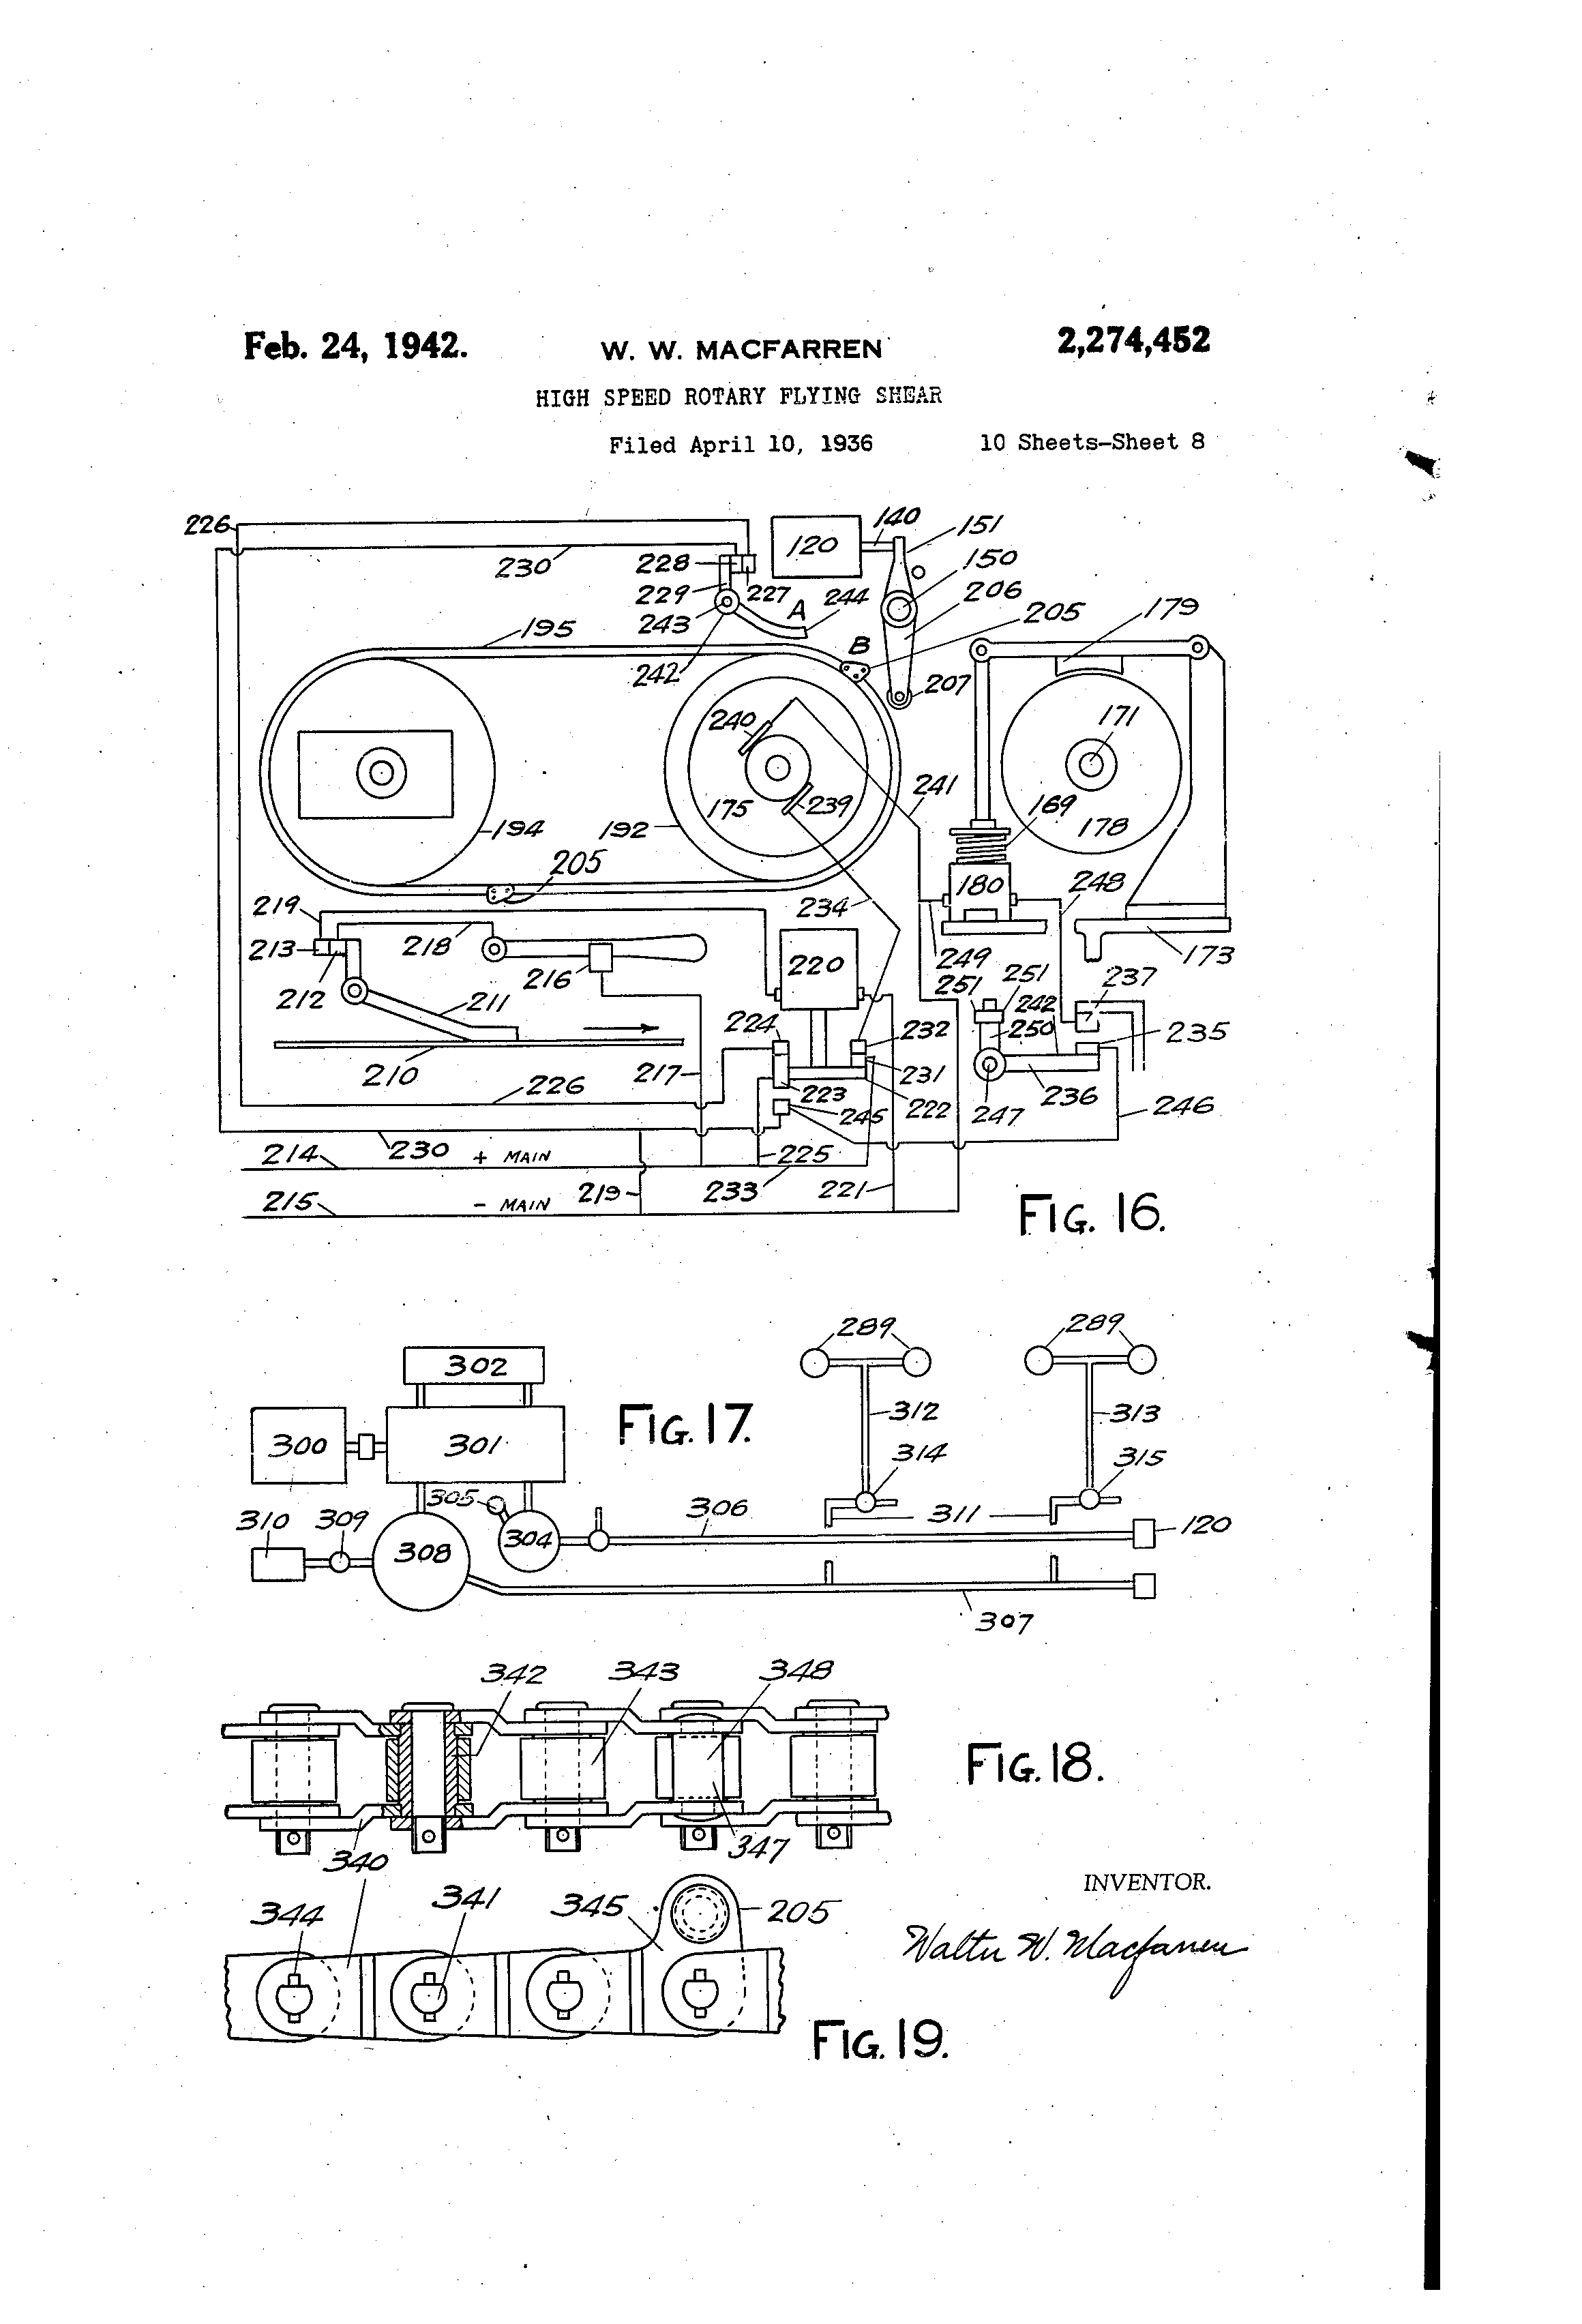 Etn roller guide shoes